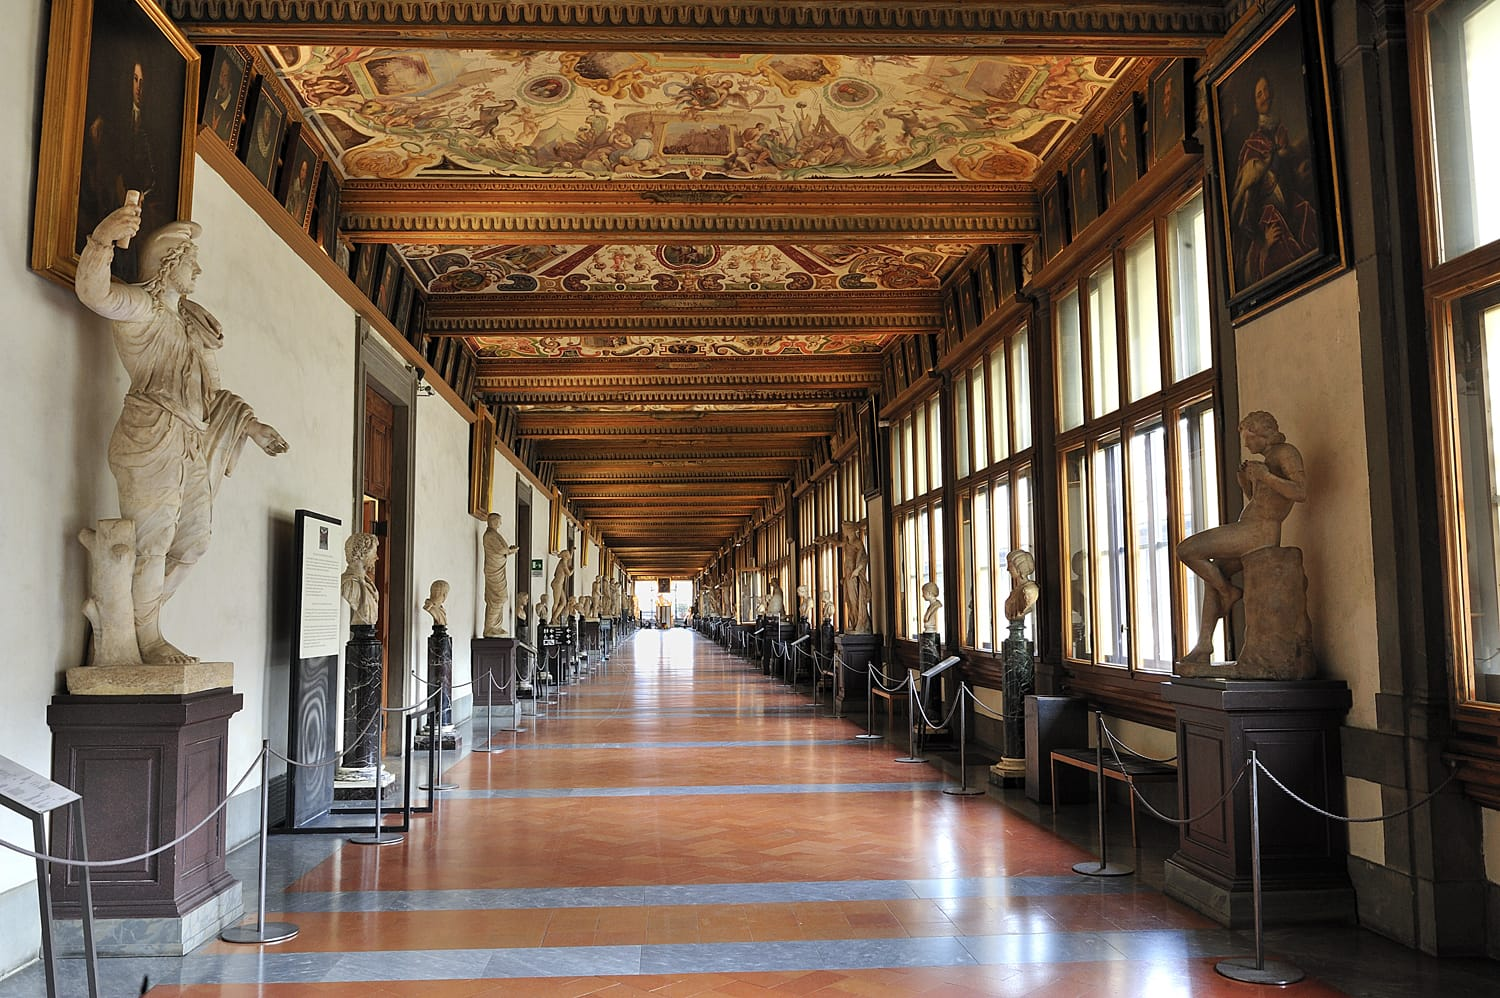 Uffizi Gallery, East Corridor, one of the main museums in Florence, and among the oldest and most famous art museums of Europe, Florence, Italy